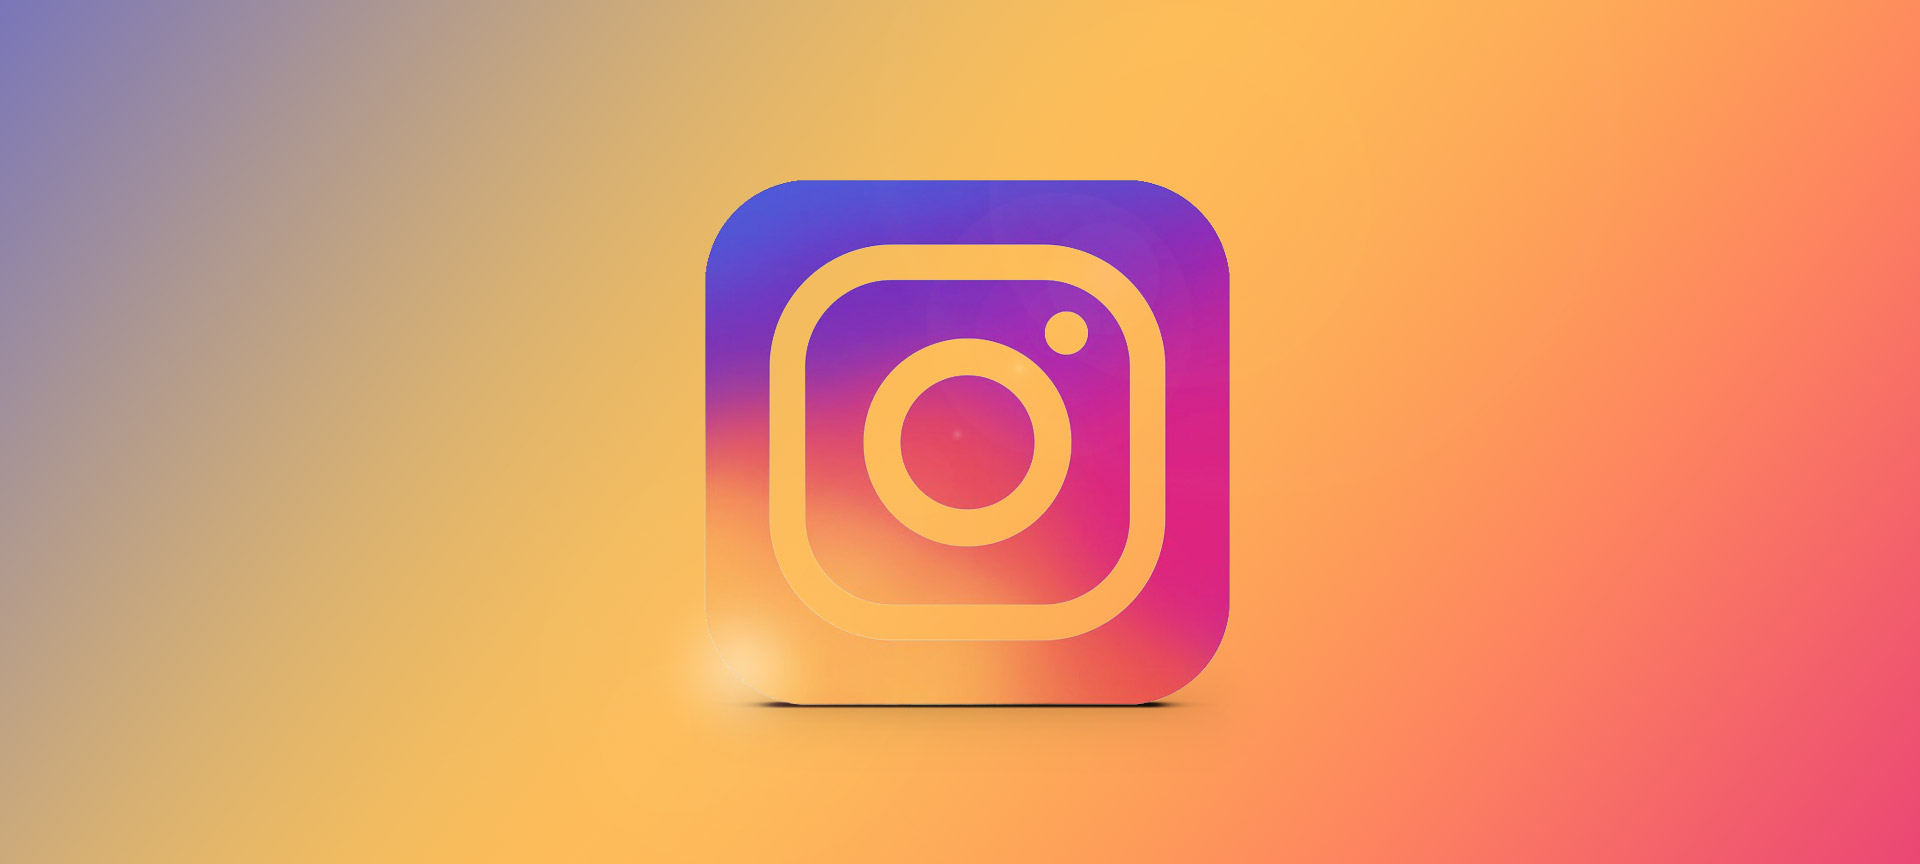 How to Sell Products on Instagram With Instagram Influencer Marketing